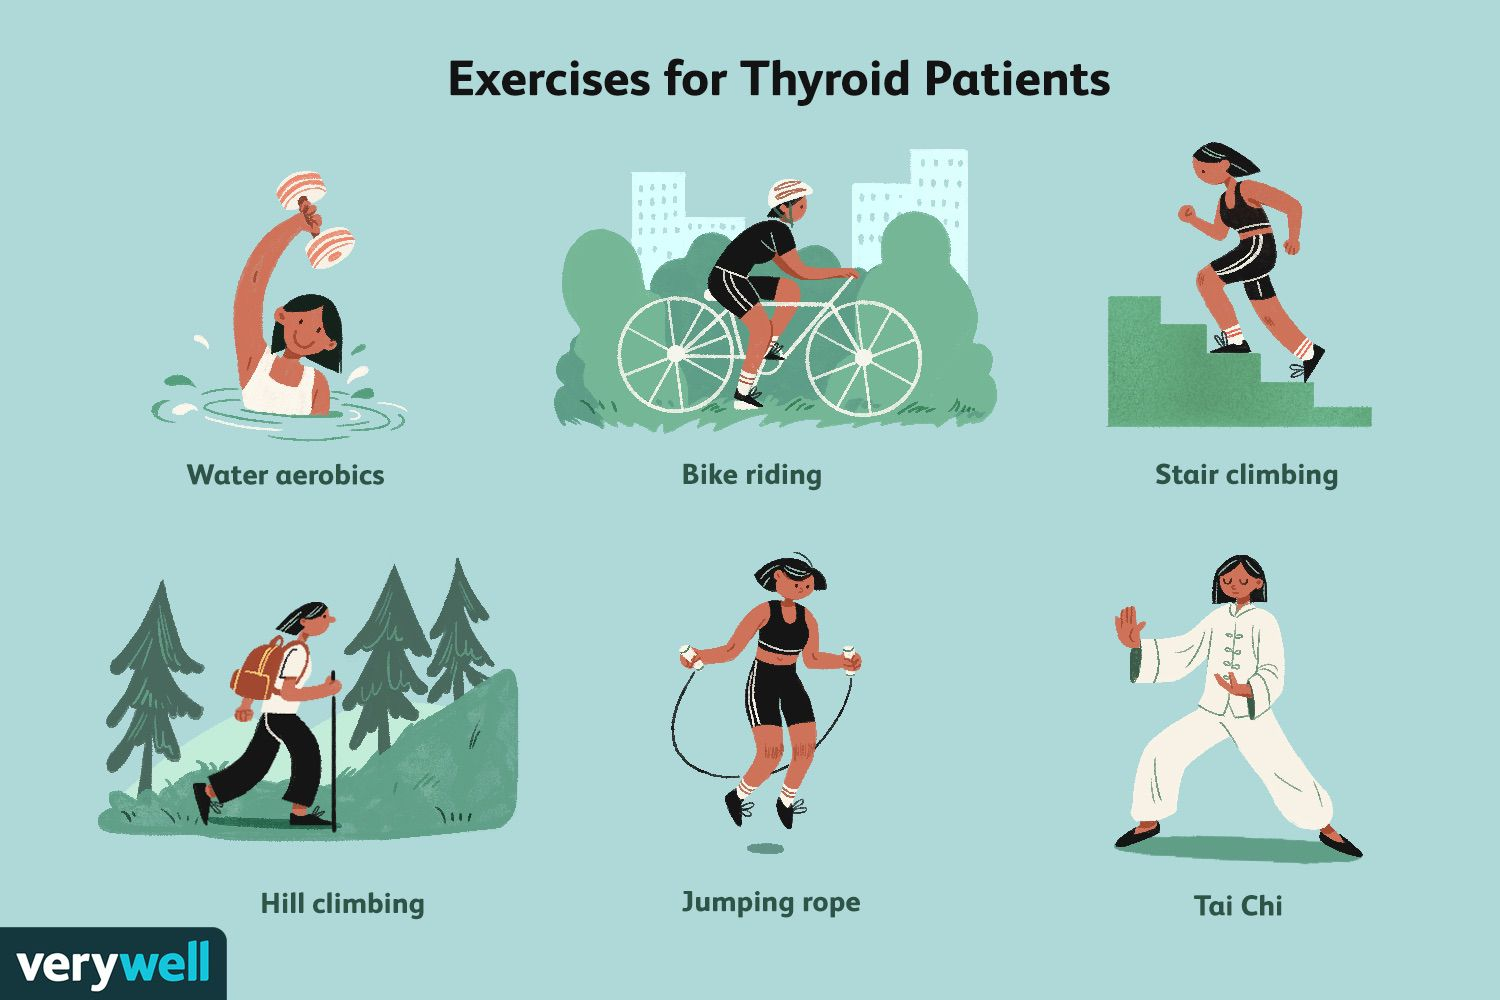 Exercises for thyroid patients.